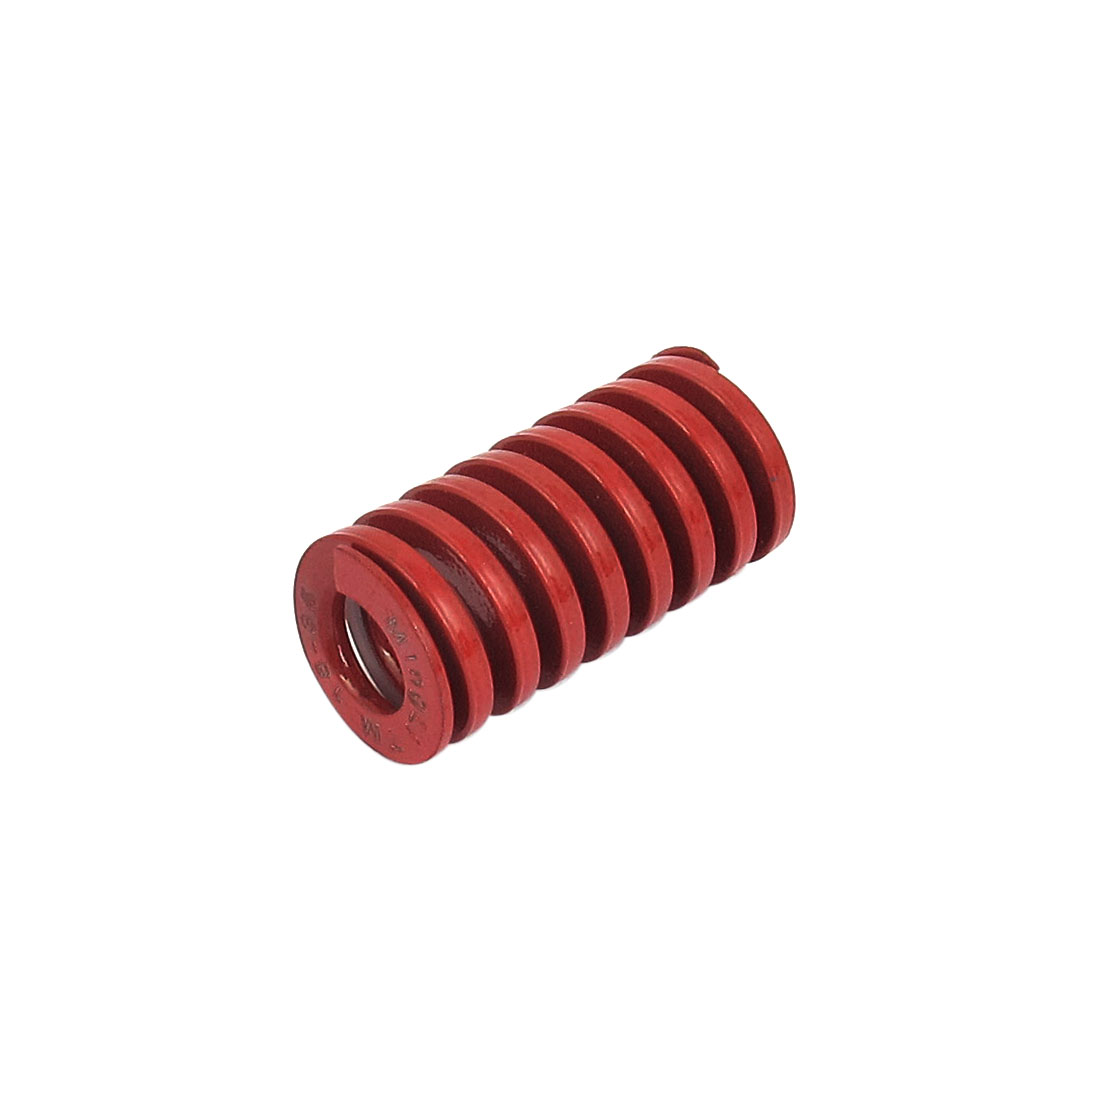 18mm OD 35mm Long Medium Load Spiral Stamping Compression Die Spring Red